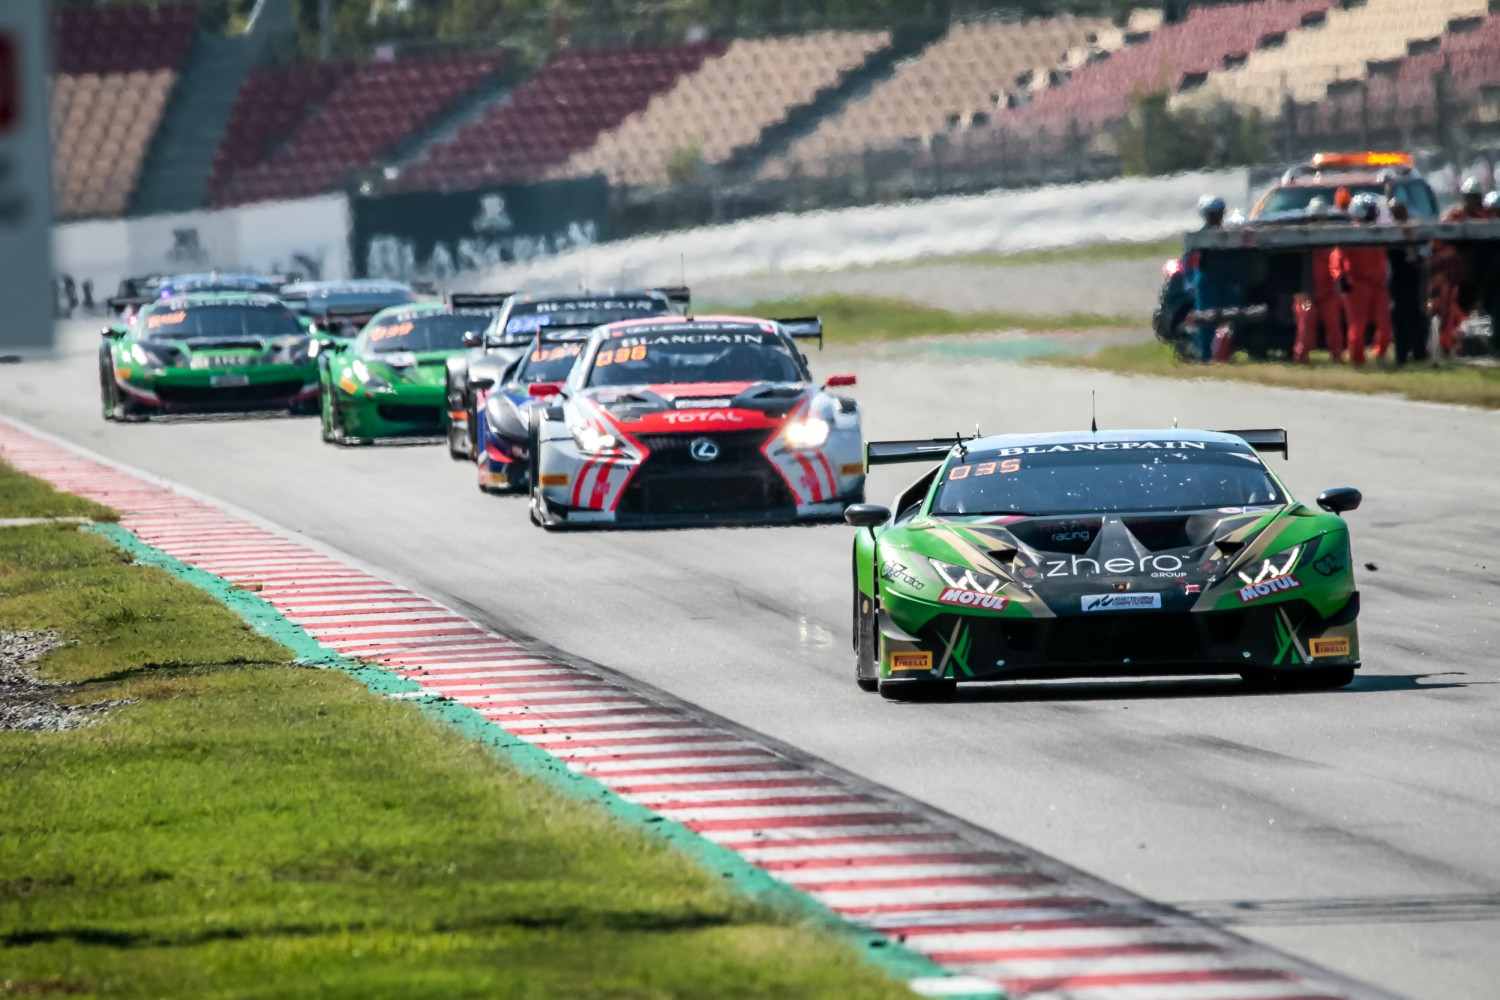 #29 Raton Racing by Target ITA Lamborghini Huracan GT3 2019 Christoph Lenz CHE Antonio Forne Tomas ESP Stefano Costantini ITA Am Cup, Race  | SRO / Patrick Hecq Photography